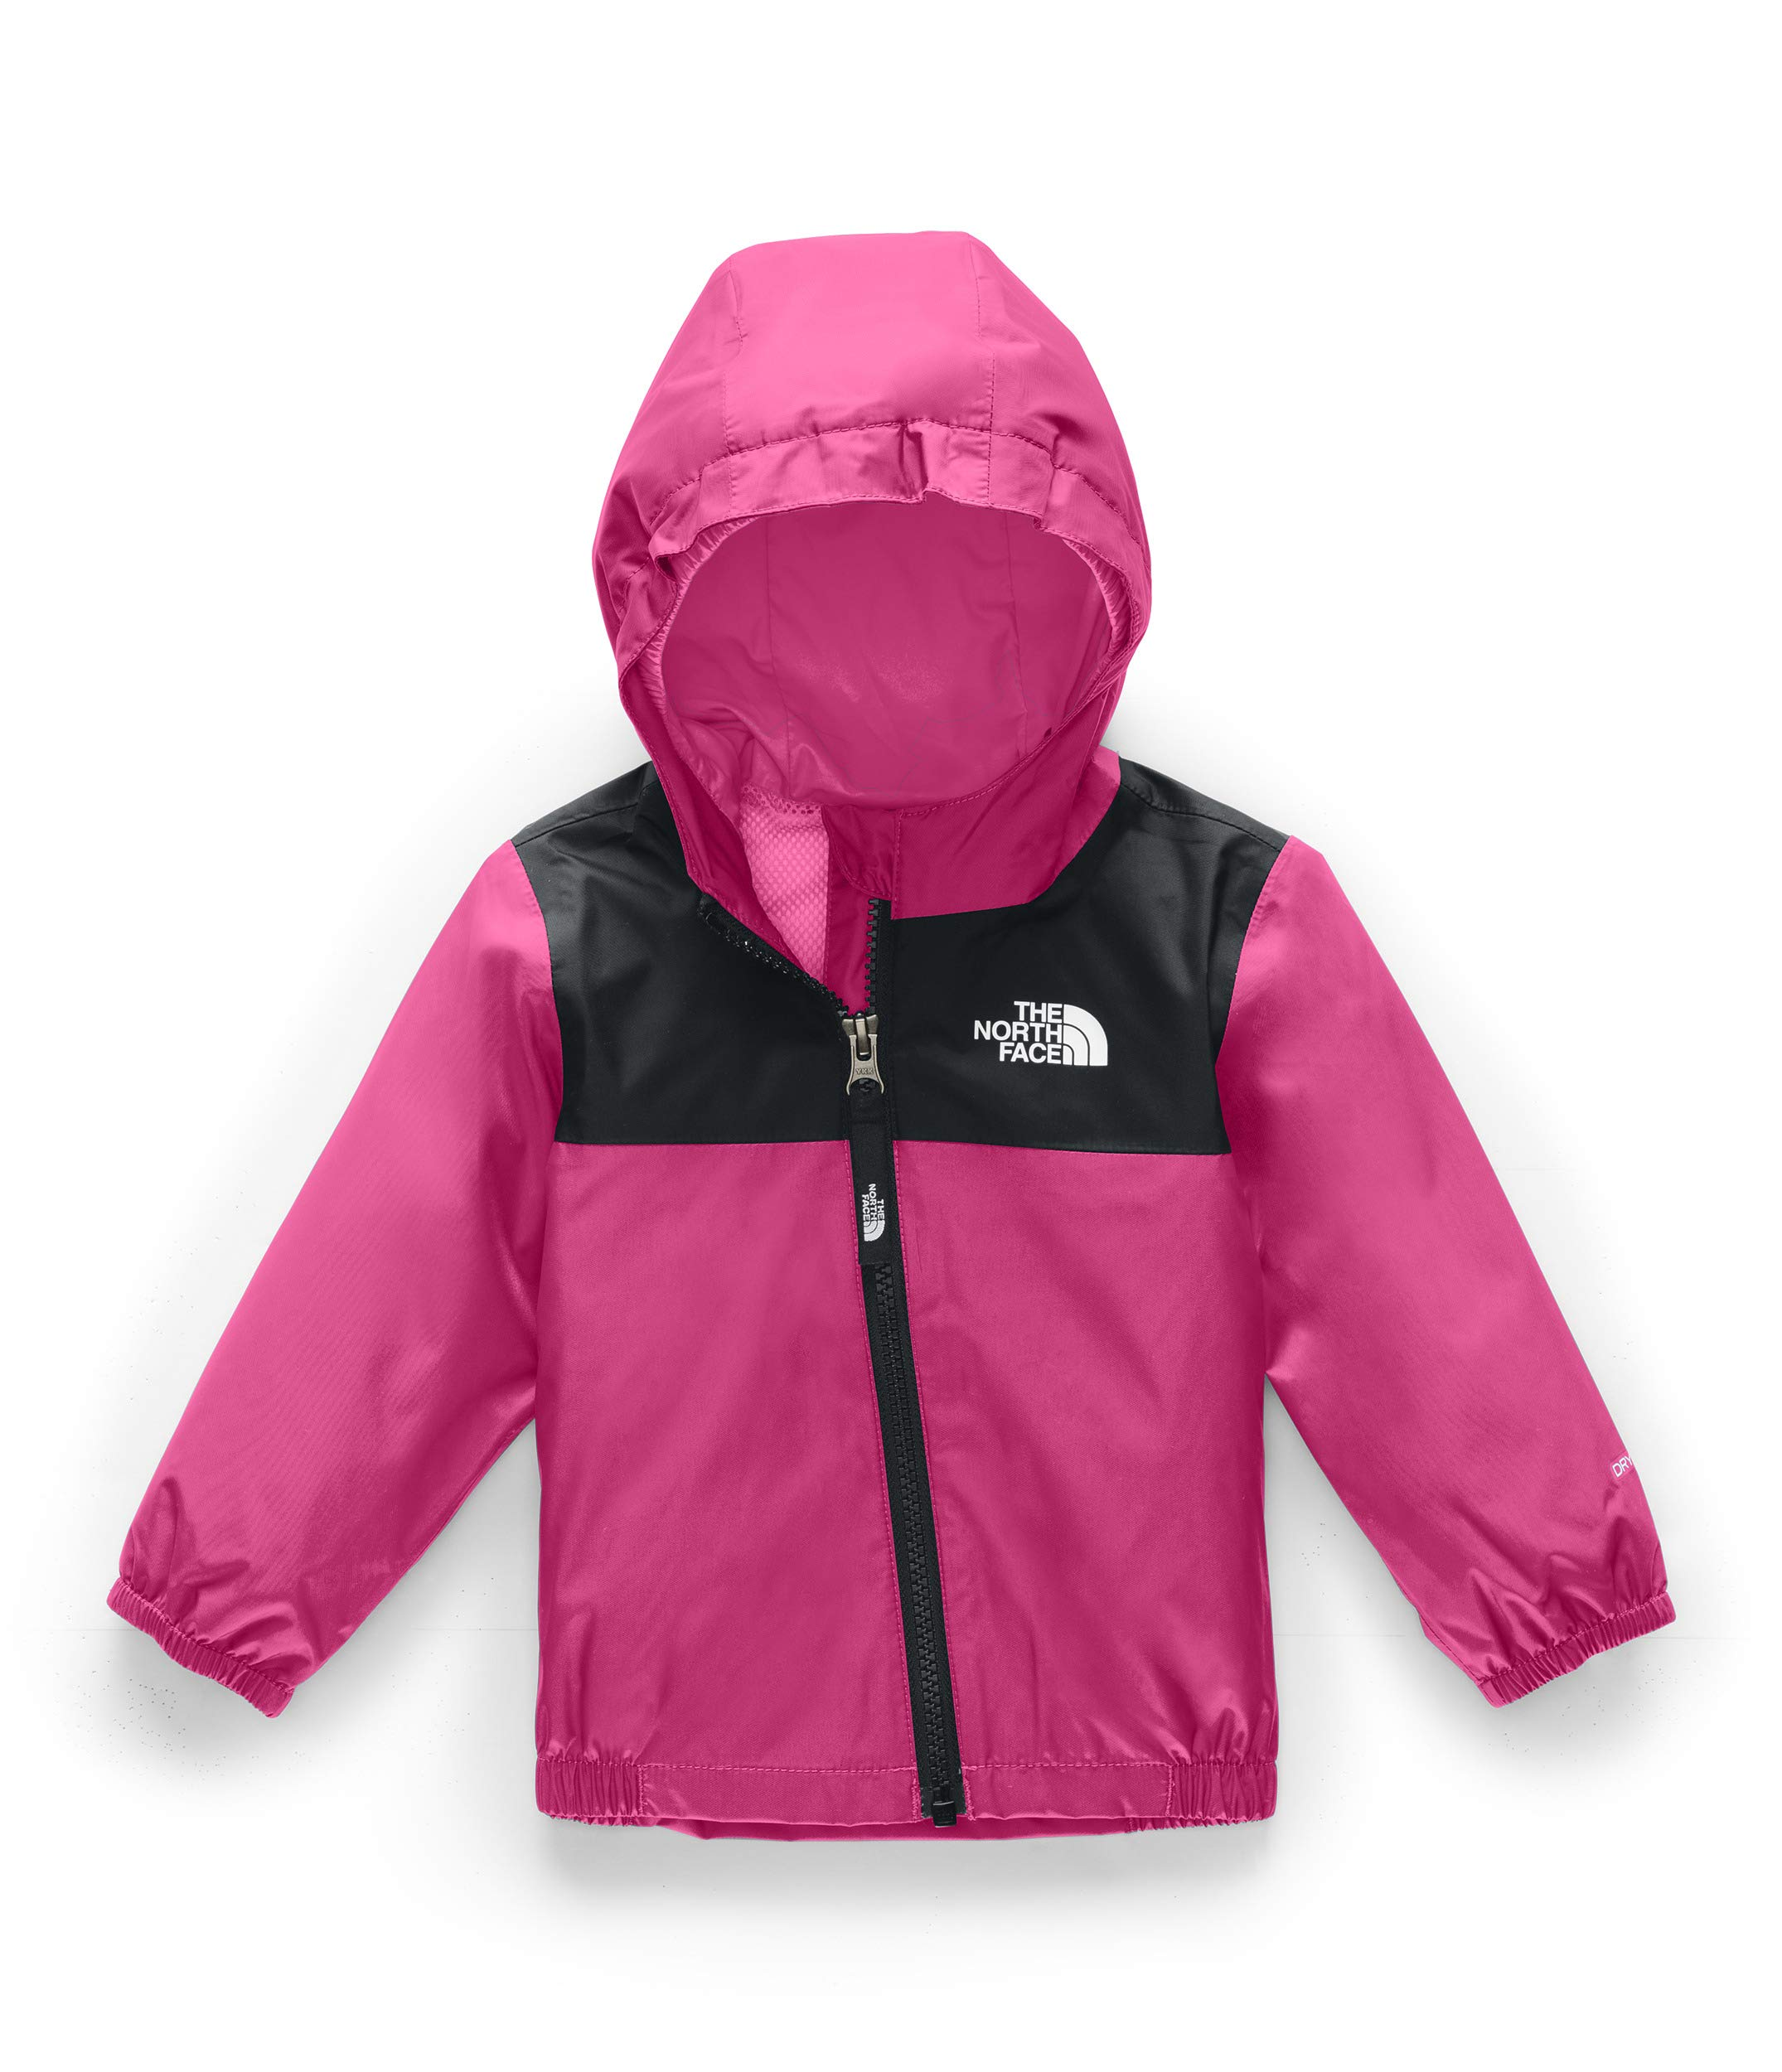 The North Face Infant Boys' Zipline Rain Jacket by The North Face